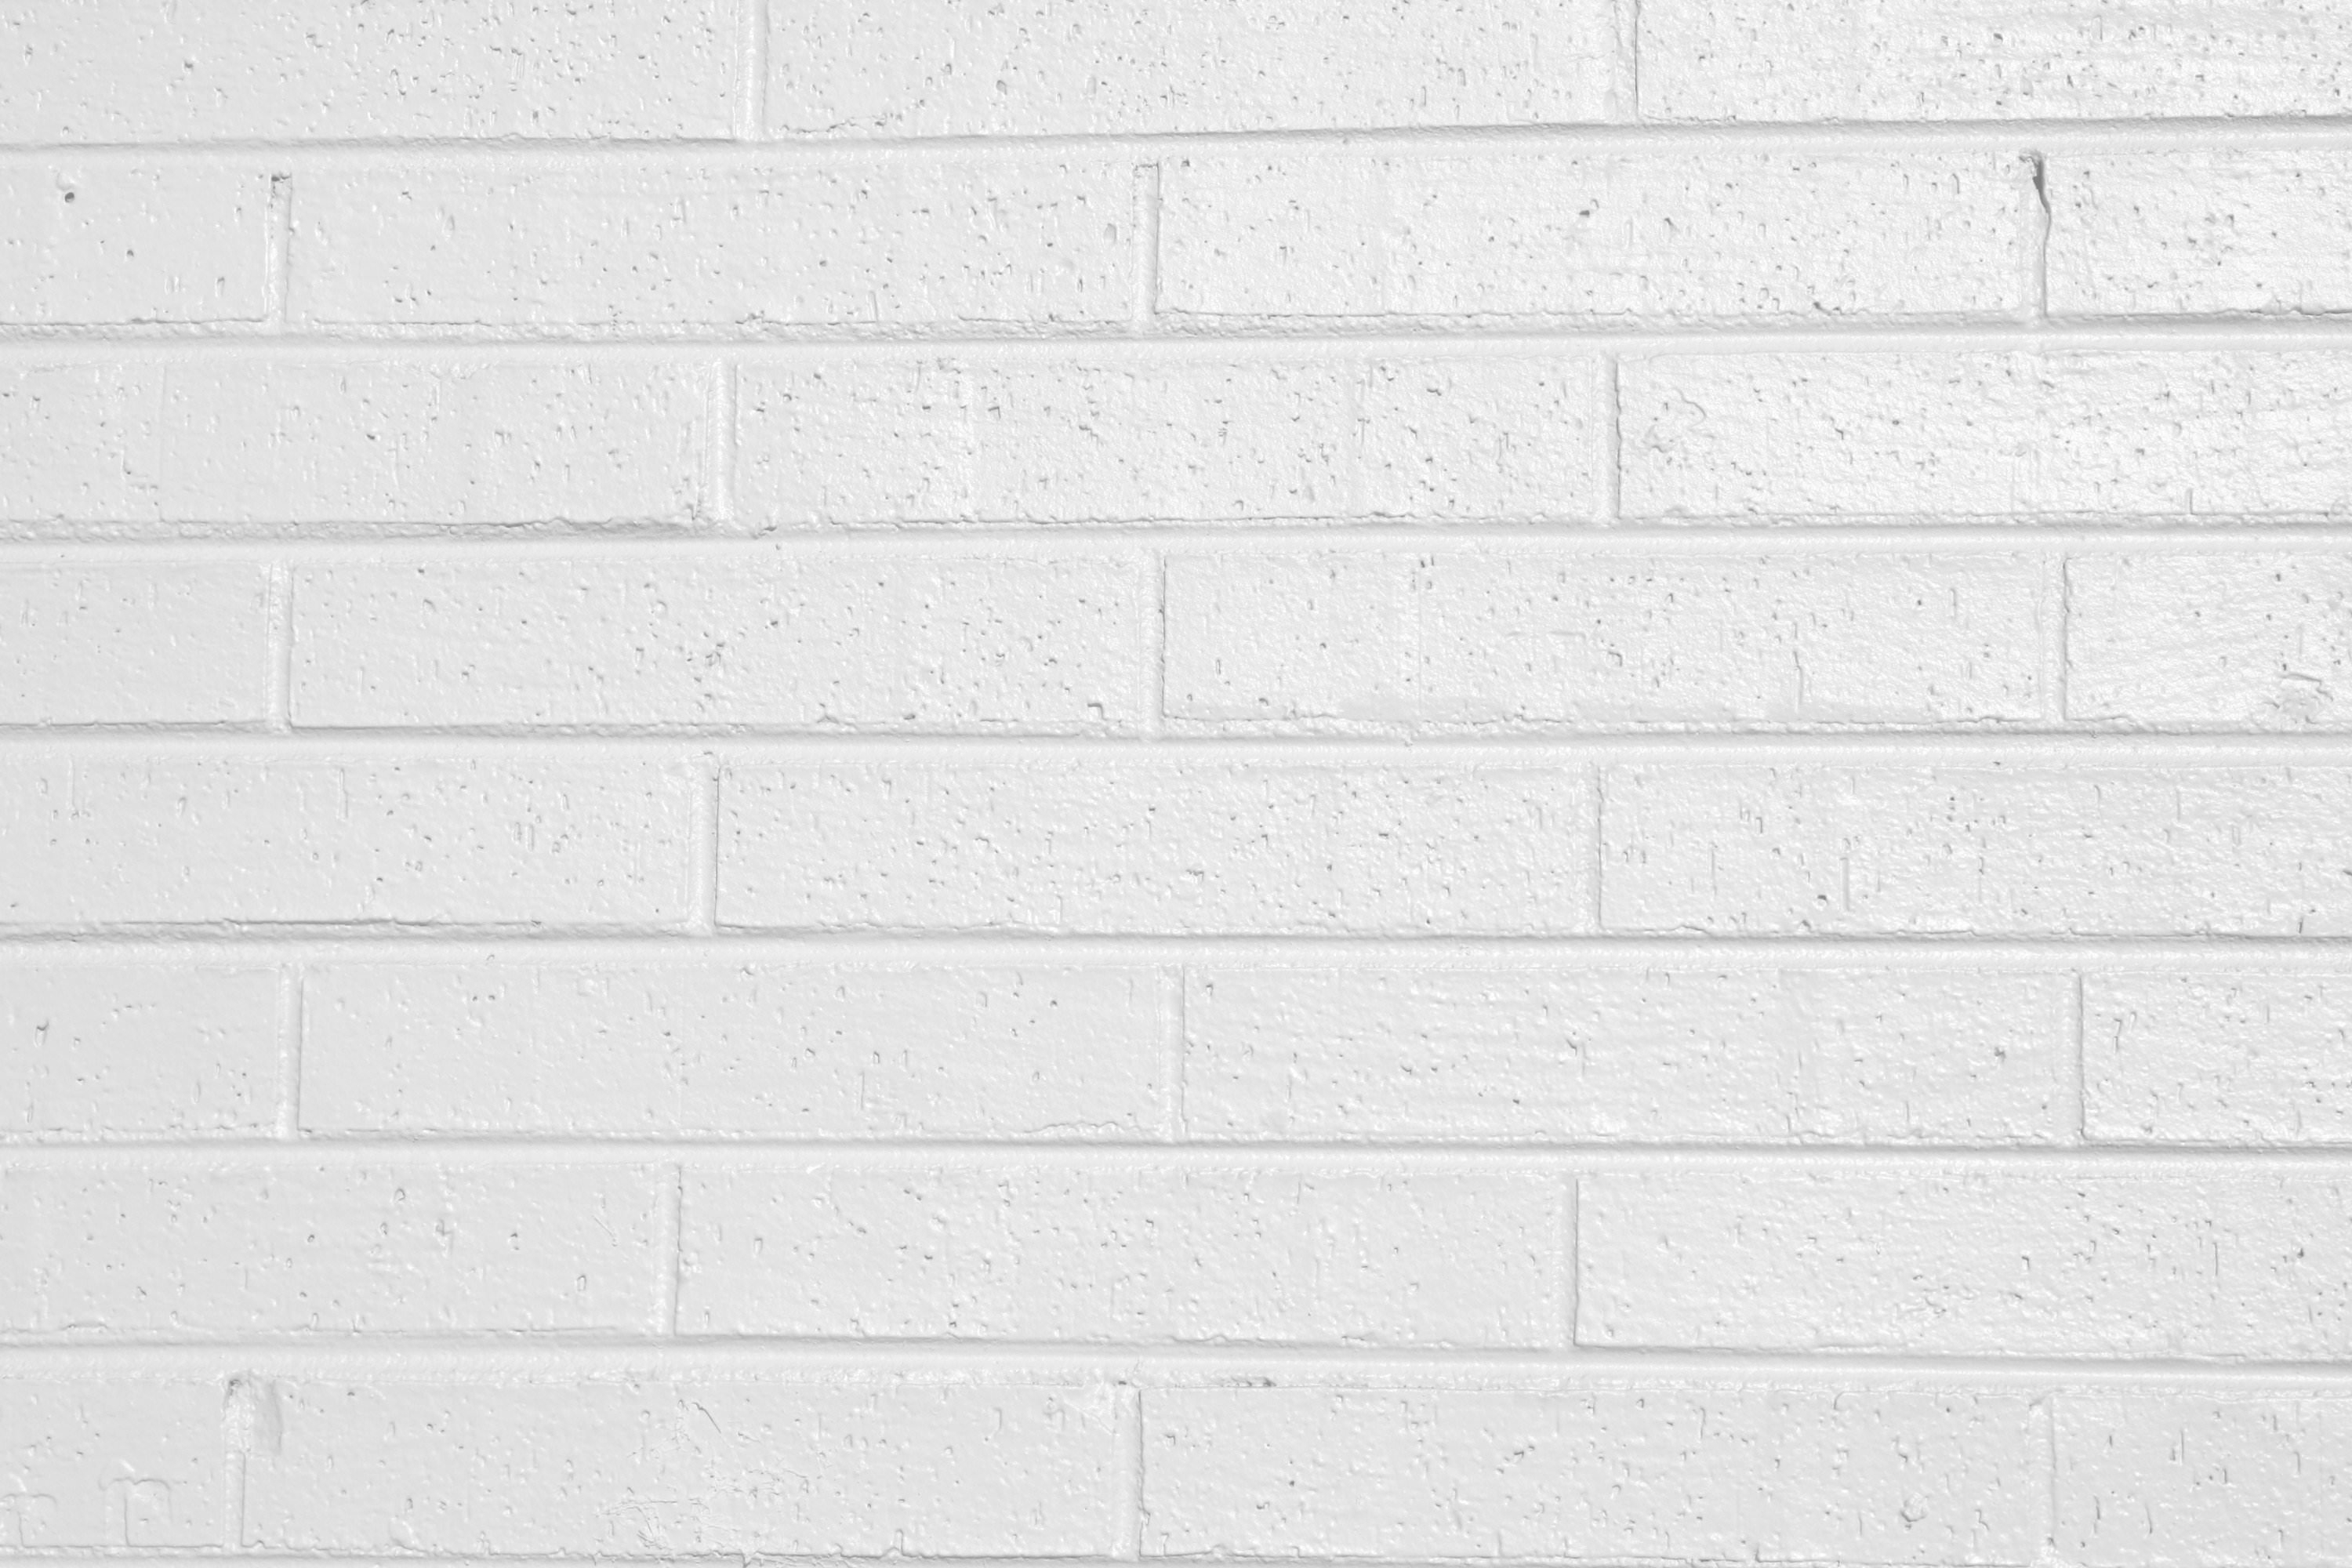 Design White Brick 15 white brick textures patterns photoshop freecreatives free wall texture